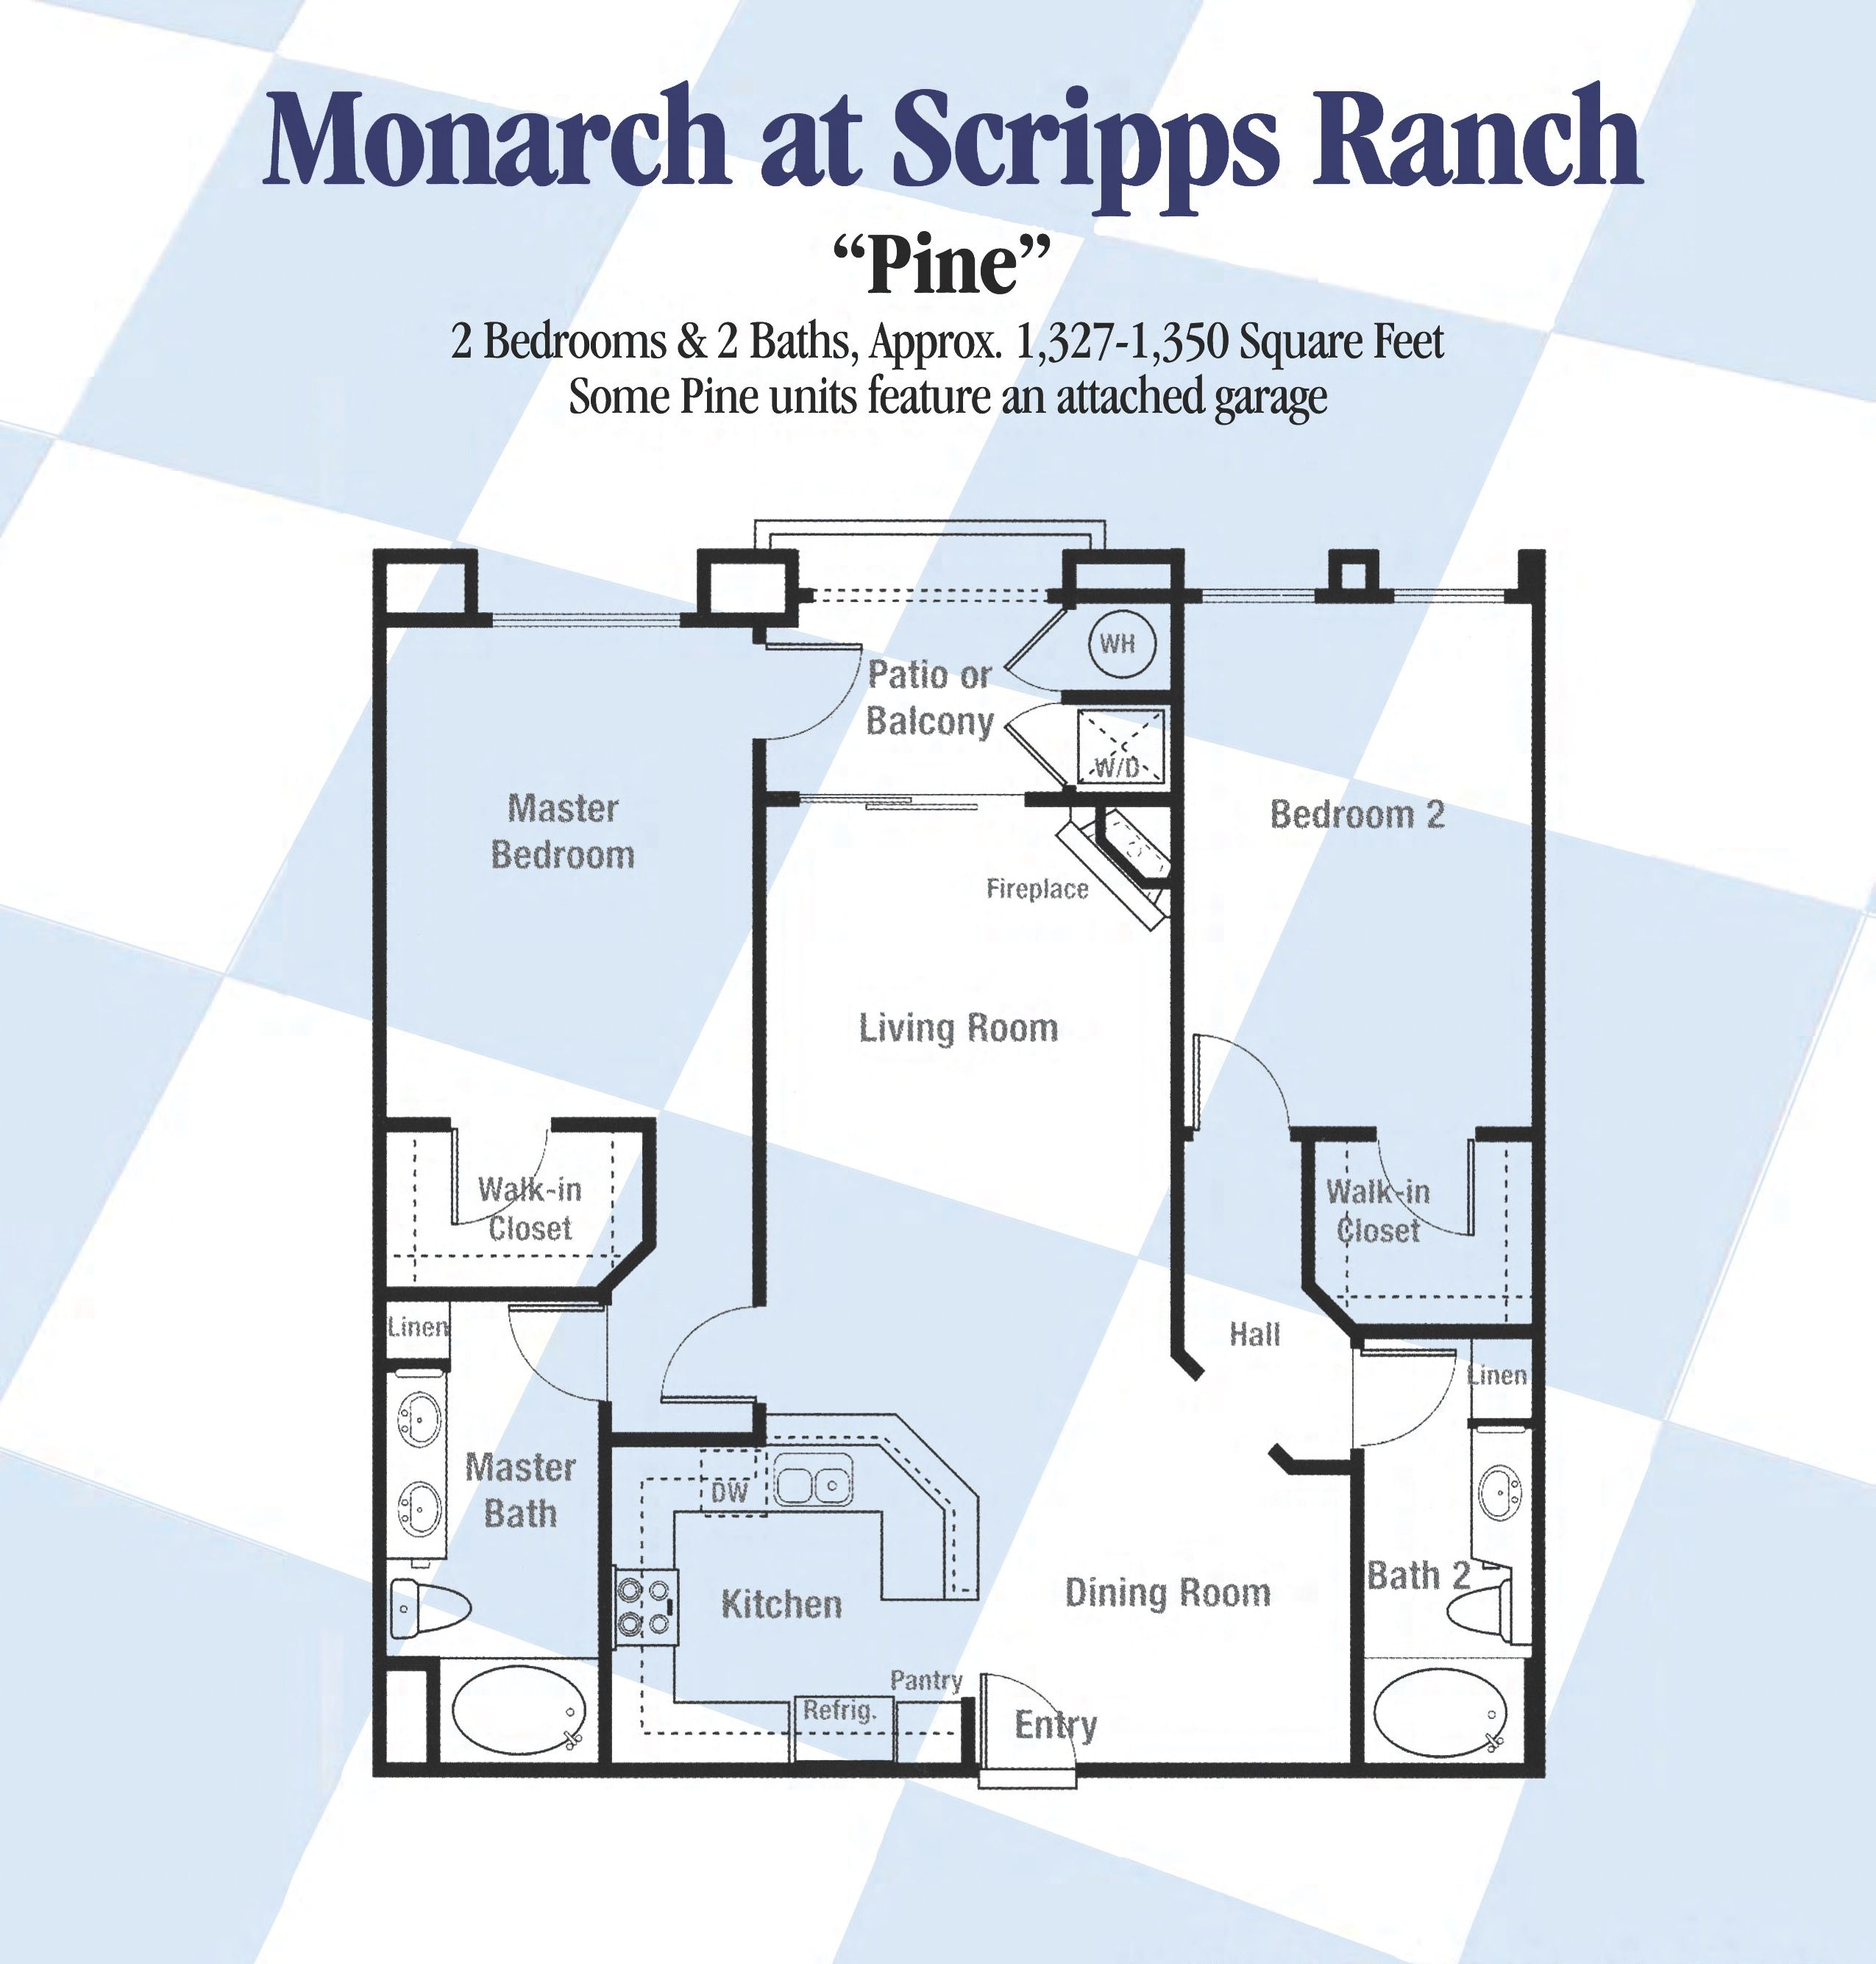 Scripps Ranch Floorplans - San Diego, California